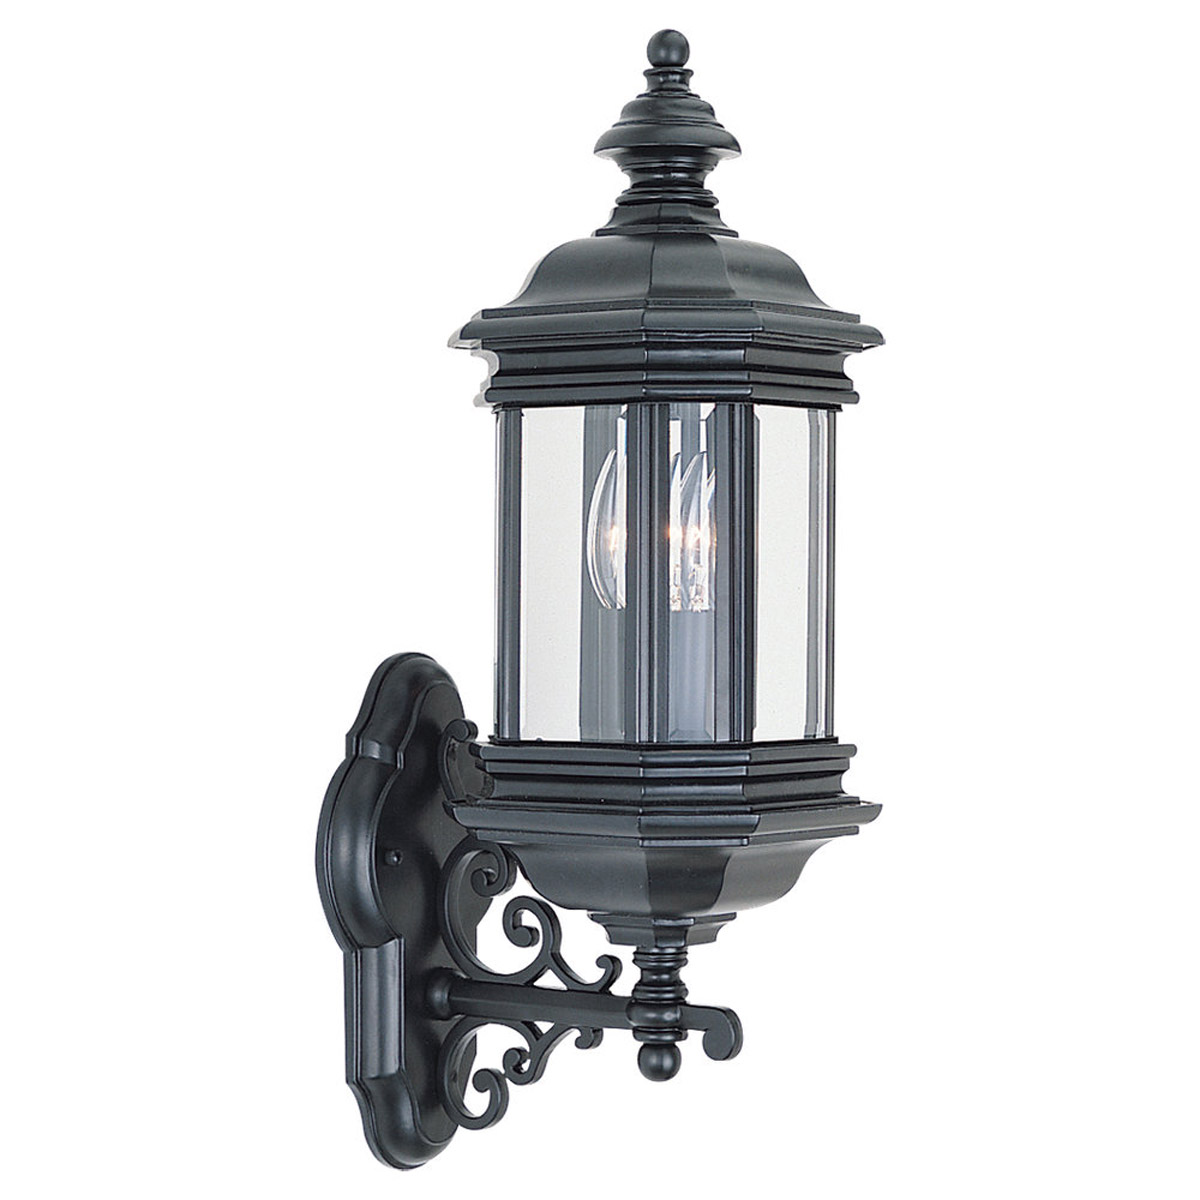 Sea Gull Lighting Hill Gate 2 Light Outdoor Wall Lantern in Black 8838-12 photo